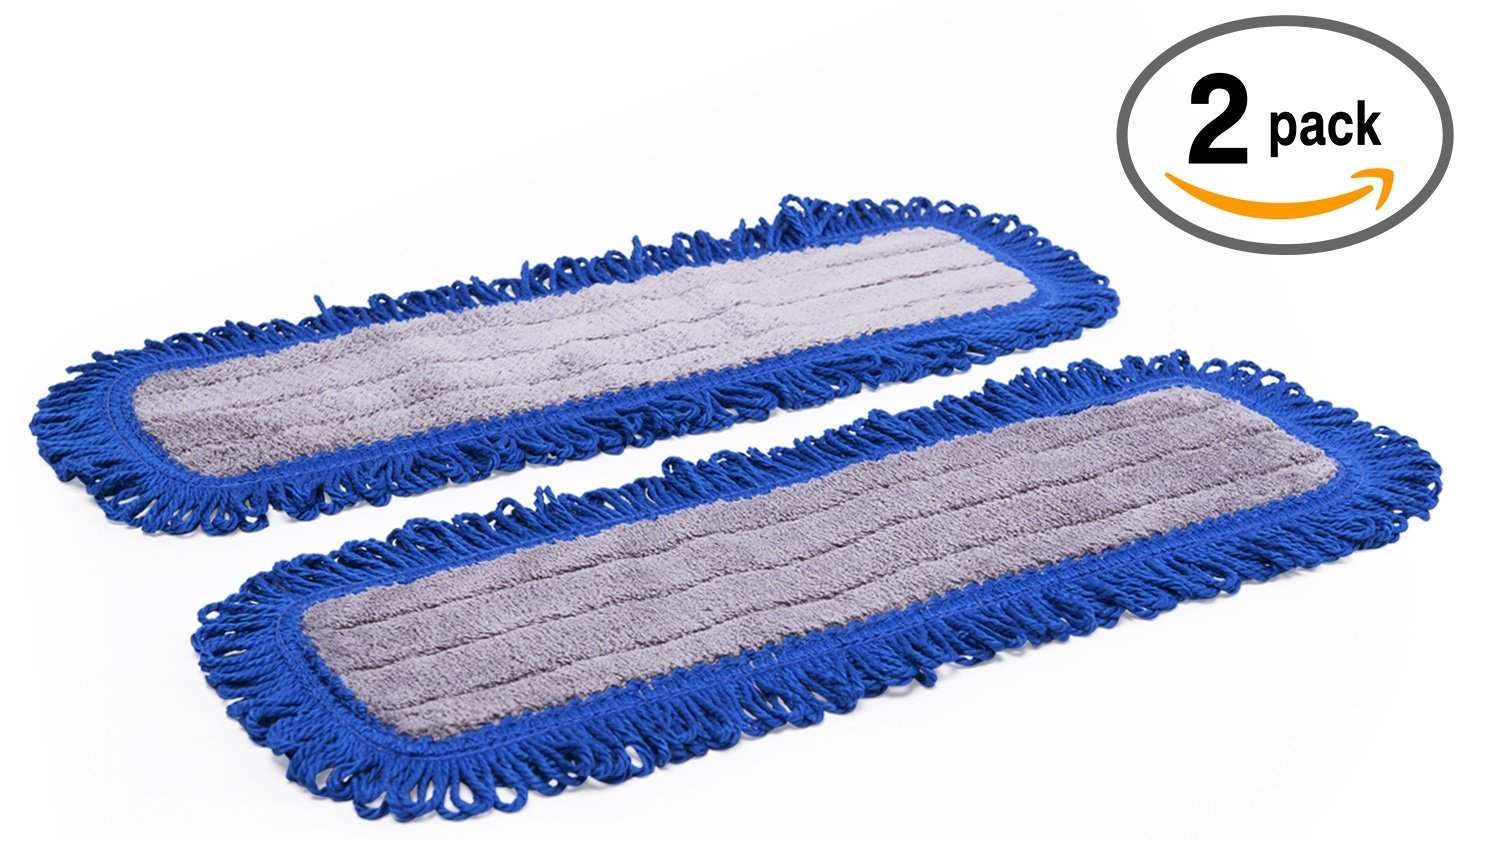 18'' Mojave Microfiber Dust Mop Pads - 2 Pack | Use with our 18'' Professional Microfiber Mop |